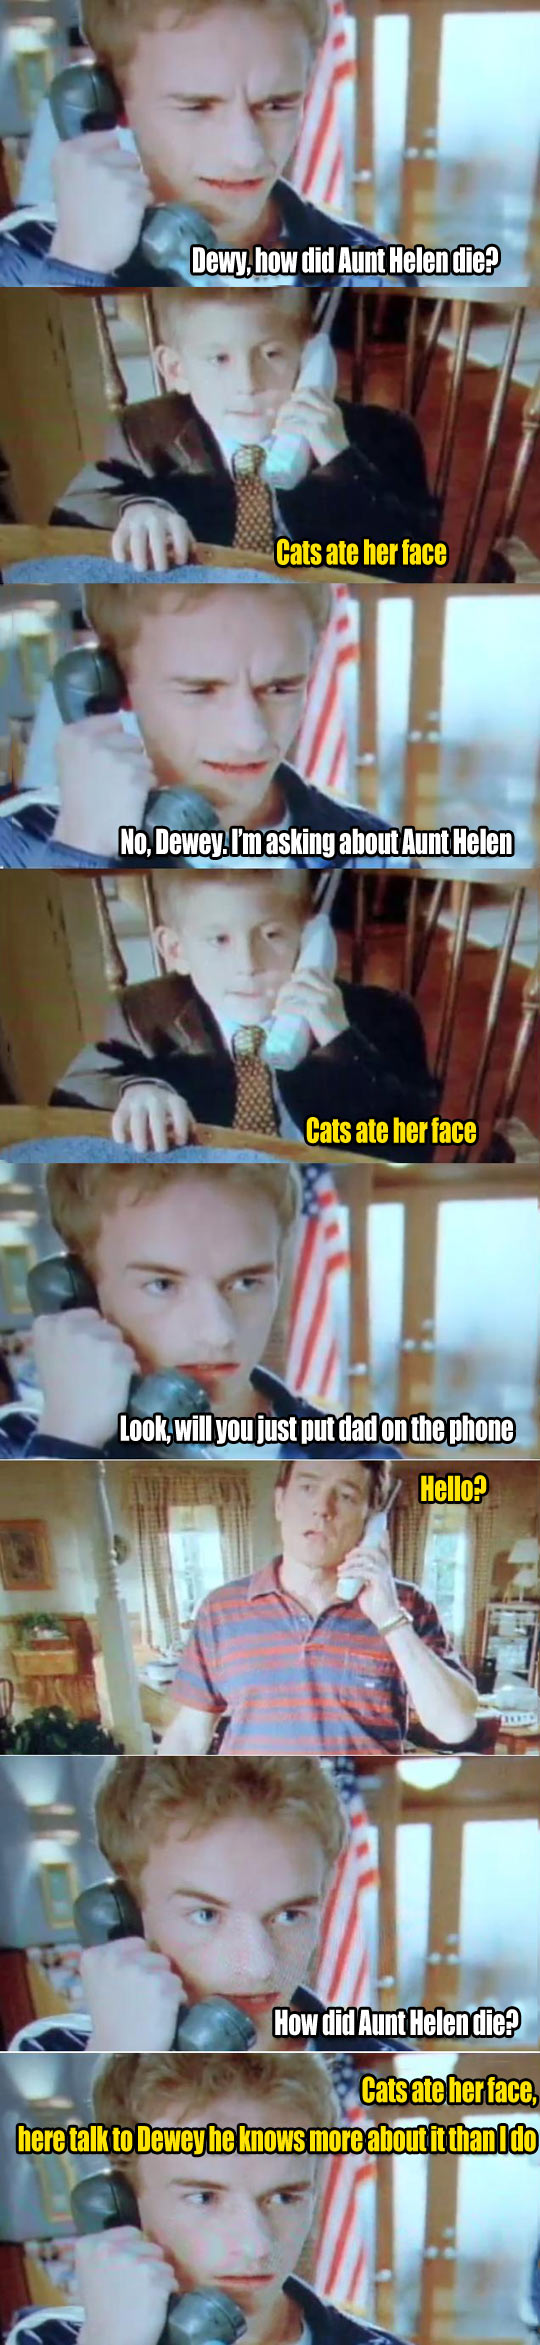 funny-Malcolm-middle-Dewey-call-aunt